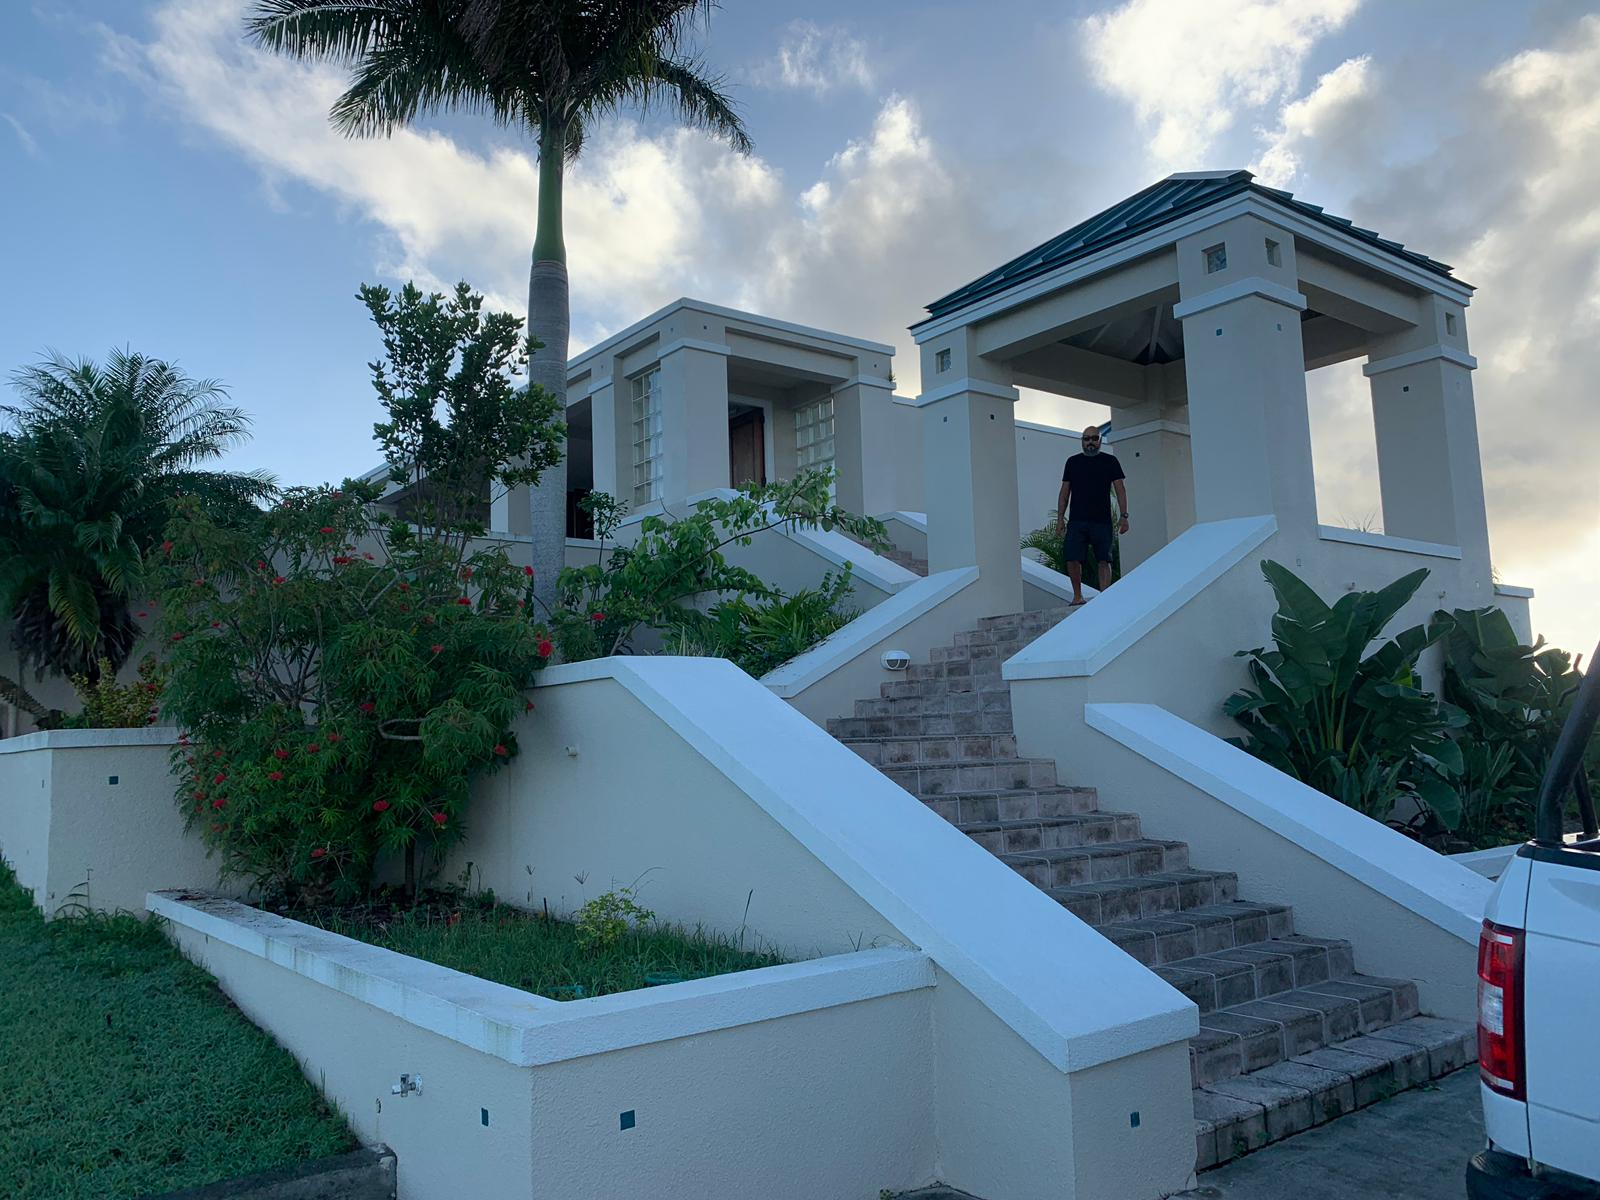 The Crew's Temporary Home in St. Croix.